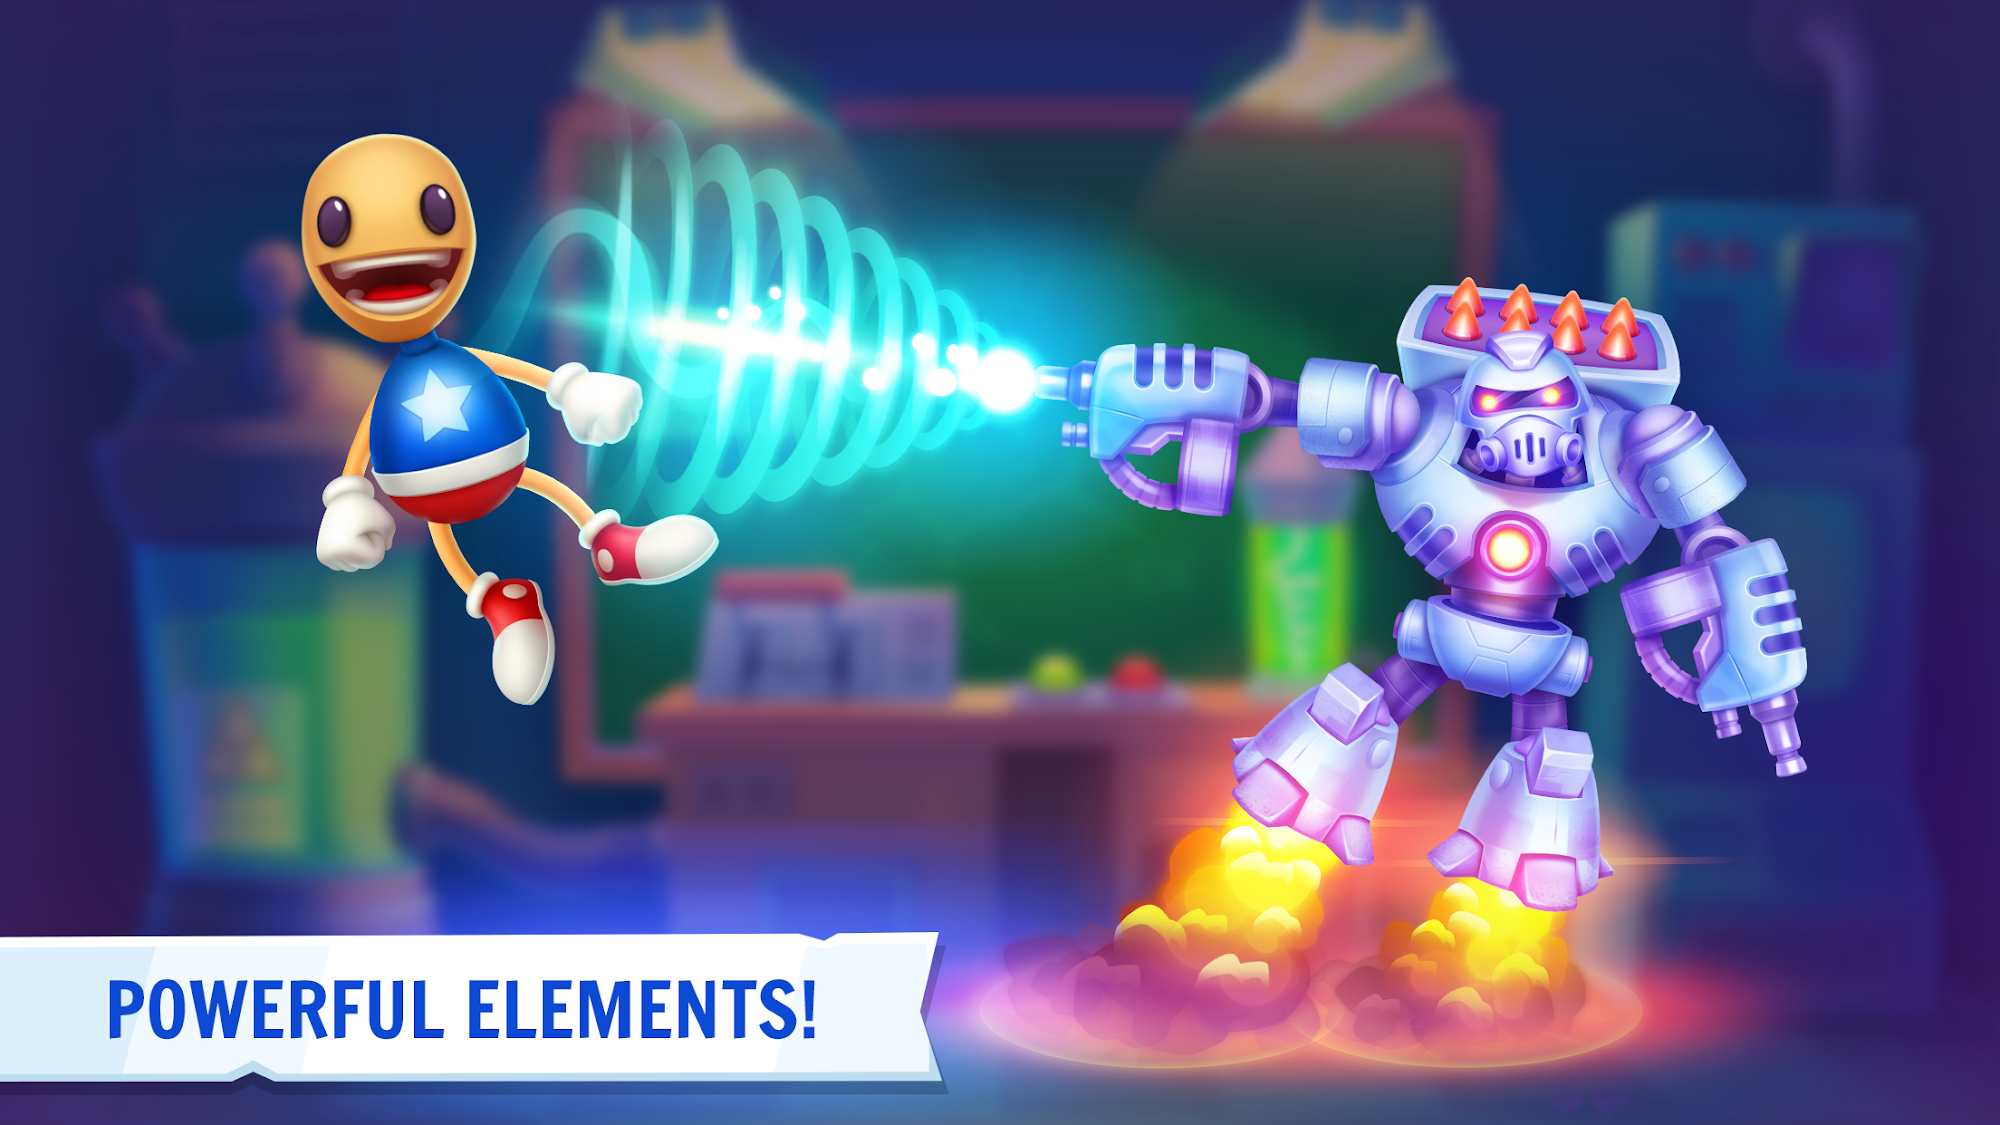 Kick the Buddy 3D for Android